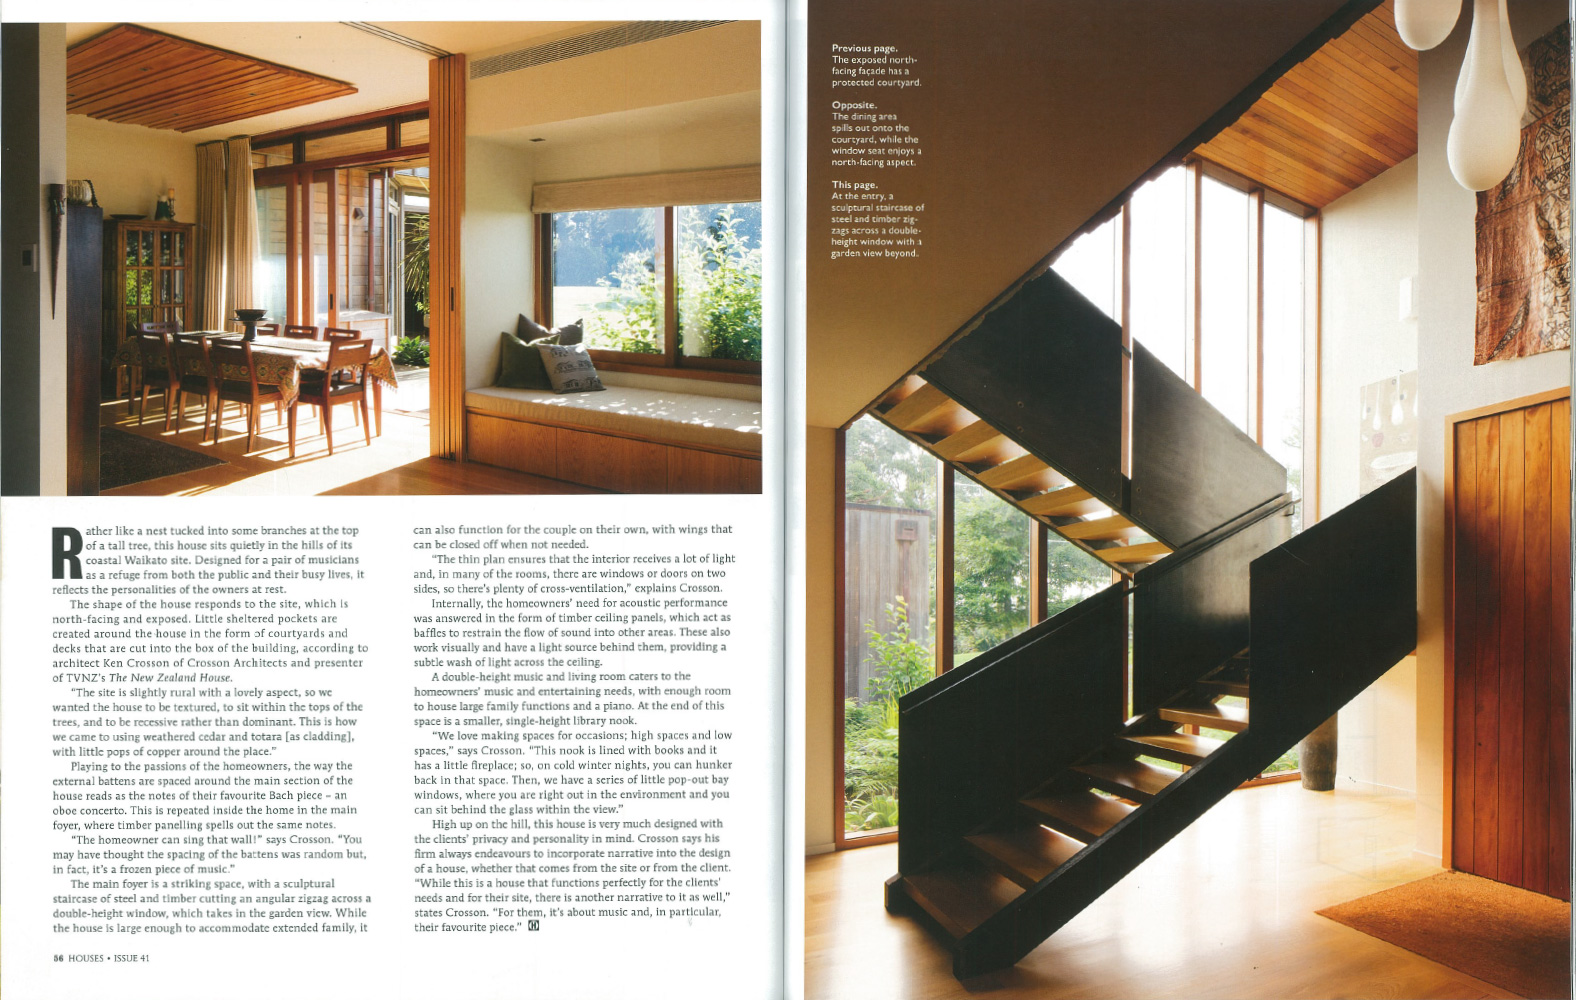 houses magazine article nz